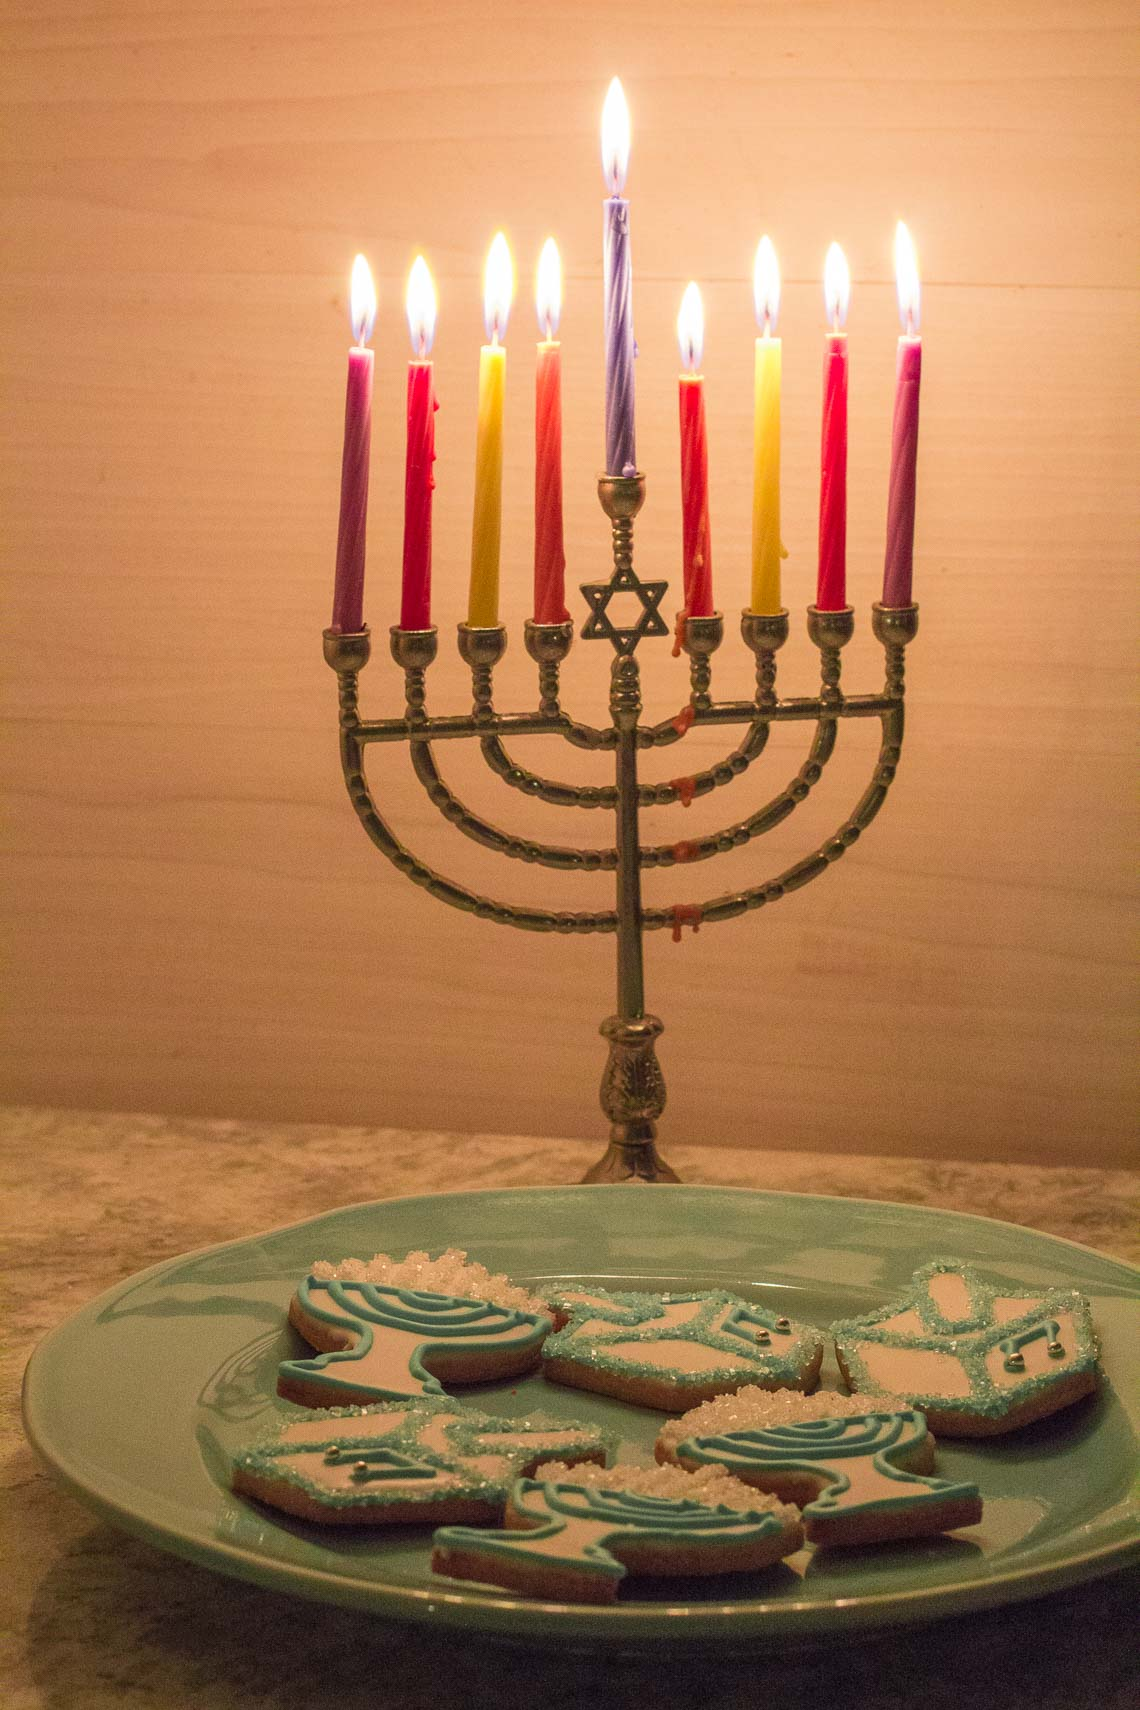 Hanukkah cookies on a plate with Menorah in background